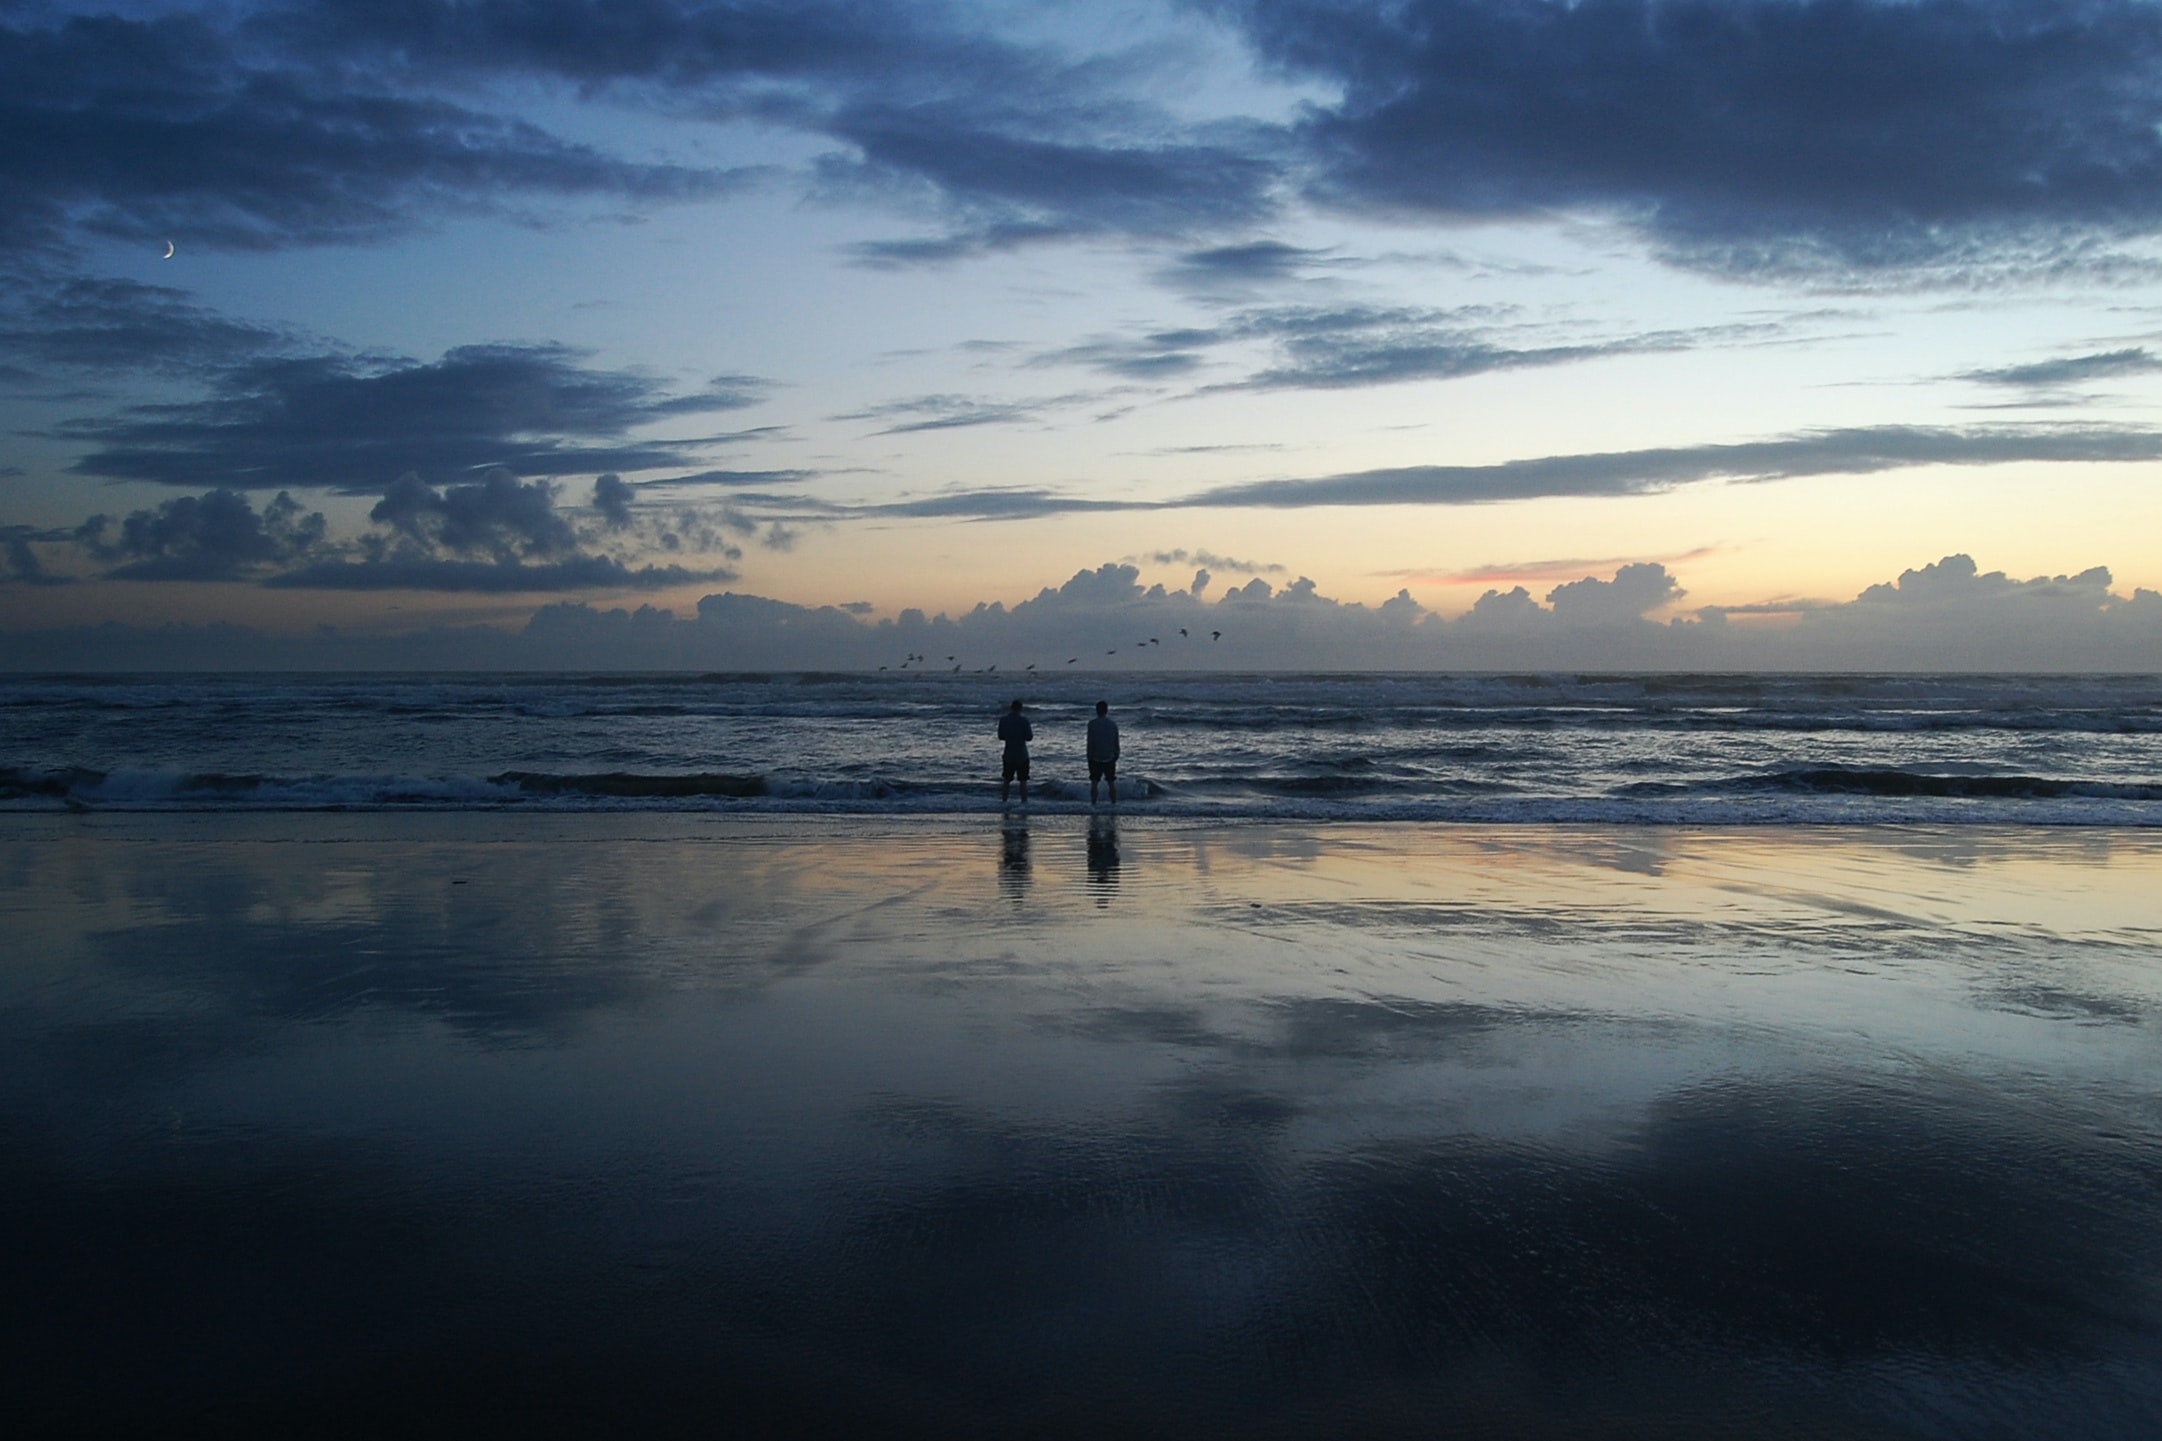 Two people standing on the beach looking out into the ocean at the horizon during sunset